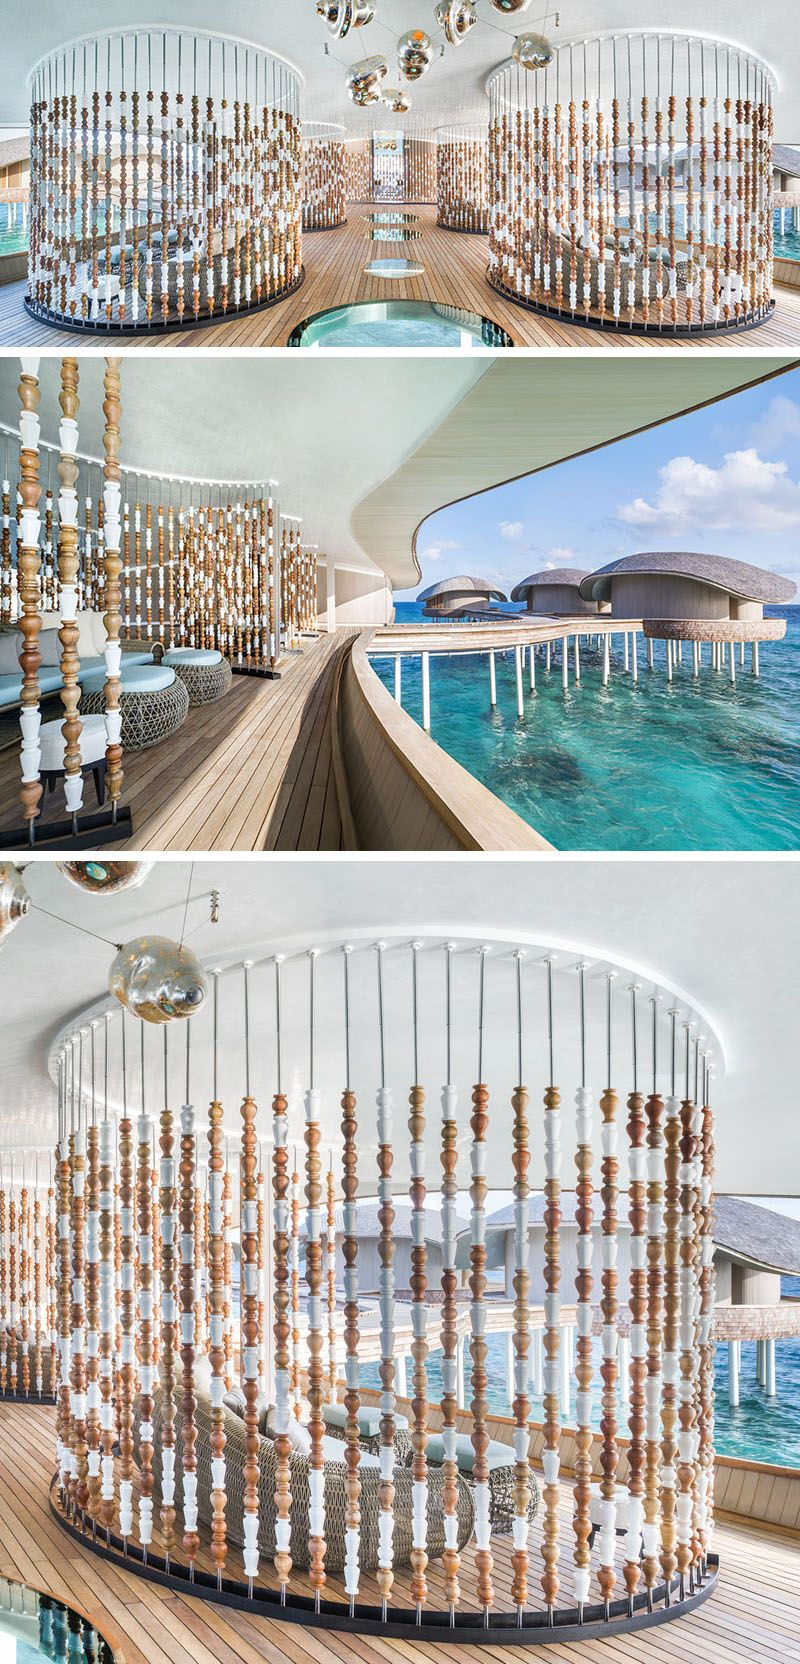 This spa uses abacuslike room dividers to create semiprivate